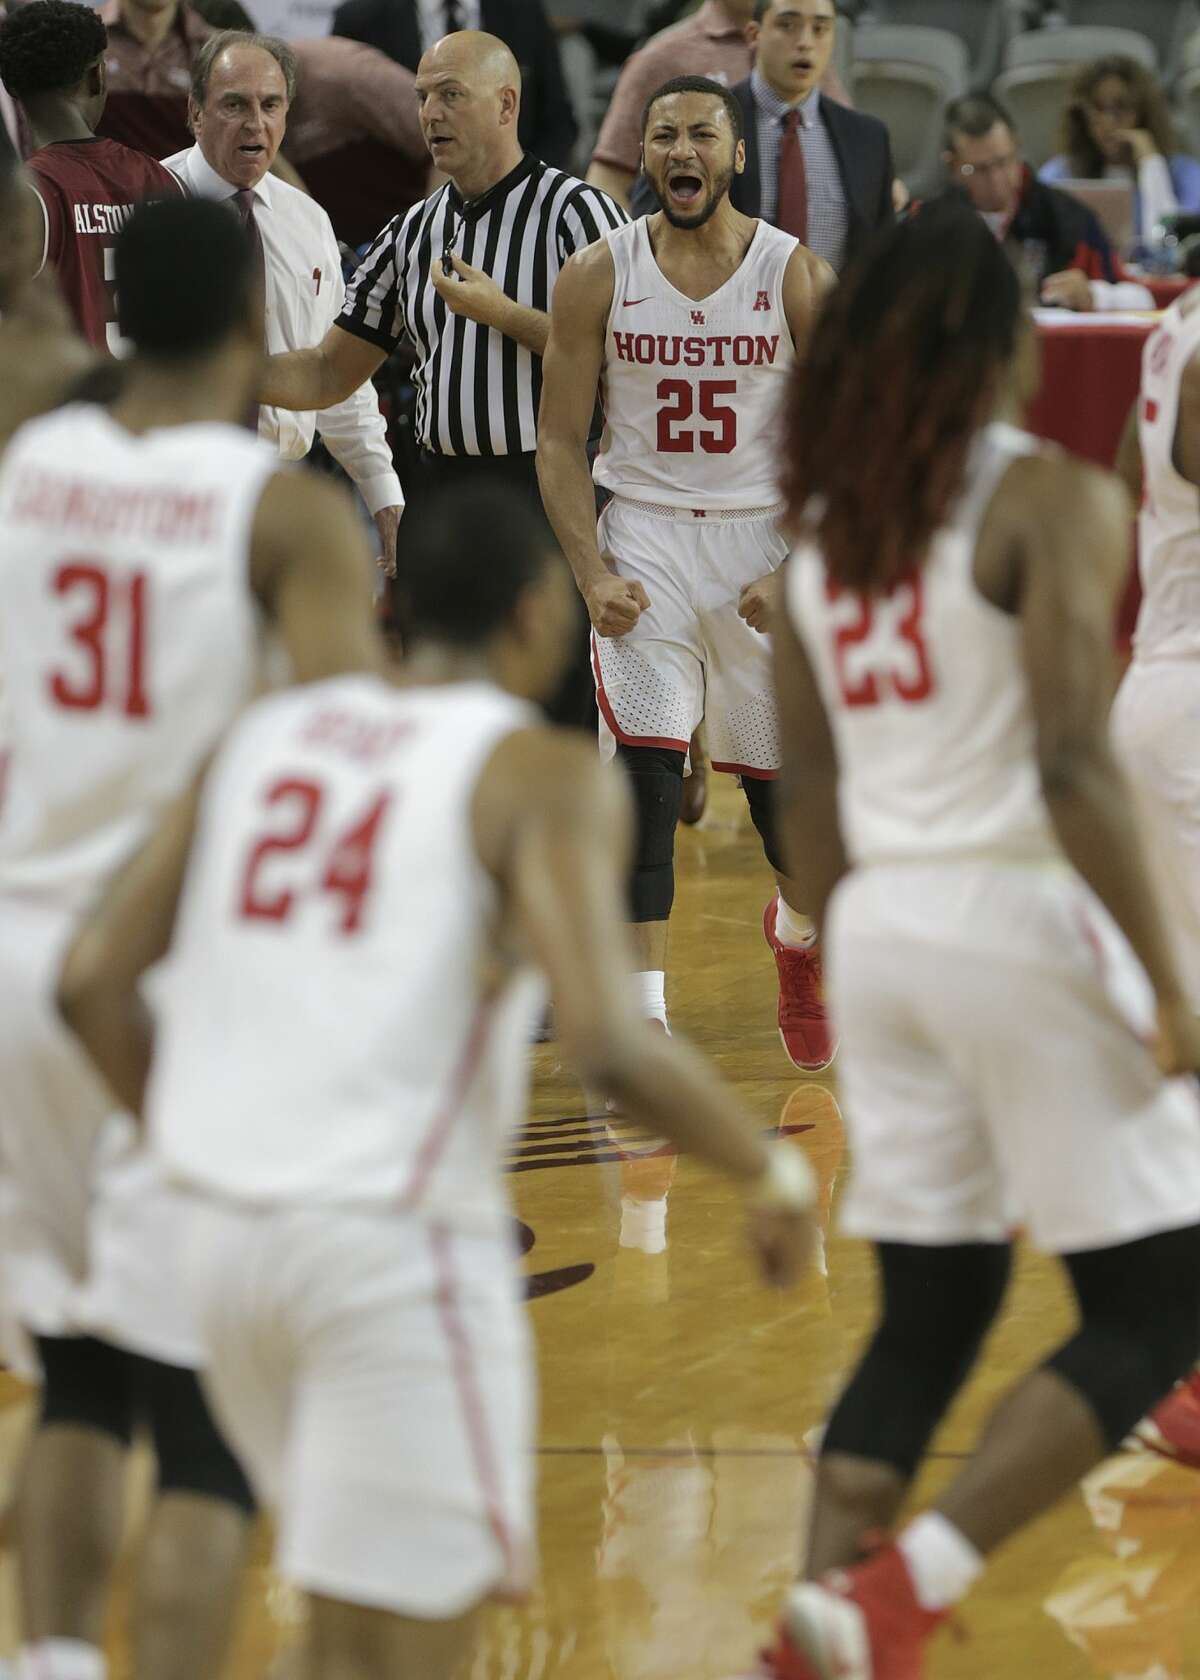 Houston Cougars guard Galen Robinson Jr. (25) reacts as the Cougars secure a lead in the second half against the Temple Owls at TSU's H&PE Arena on Saturday, Dec. 30, 2017, in Houston. Houston won the game 76-73. ( Elizabeth Conley / Houston Chronicle )